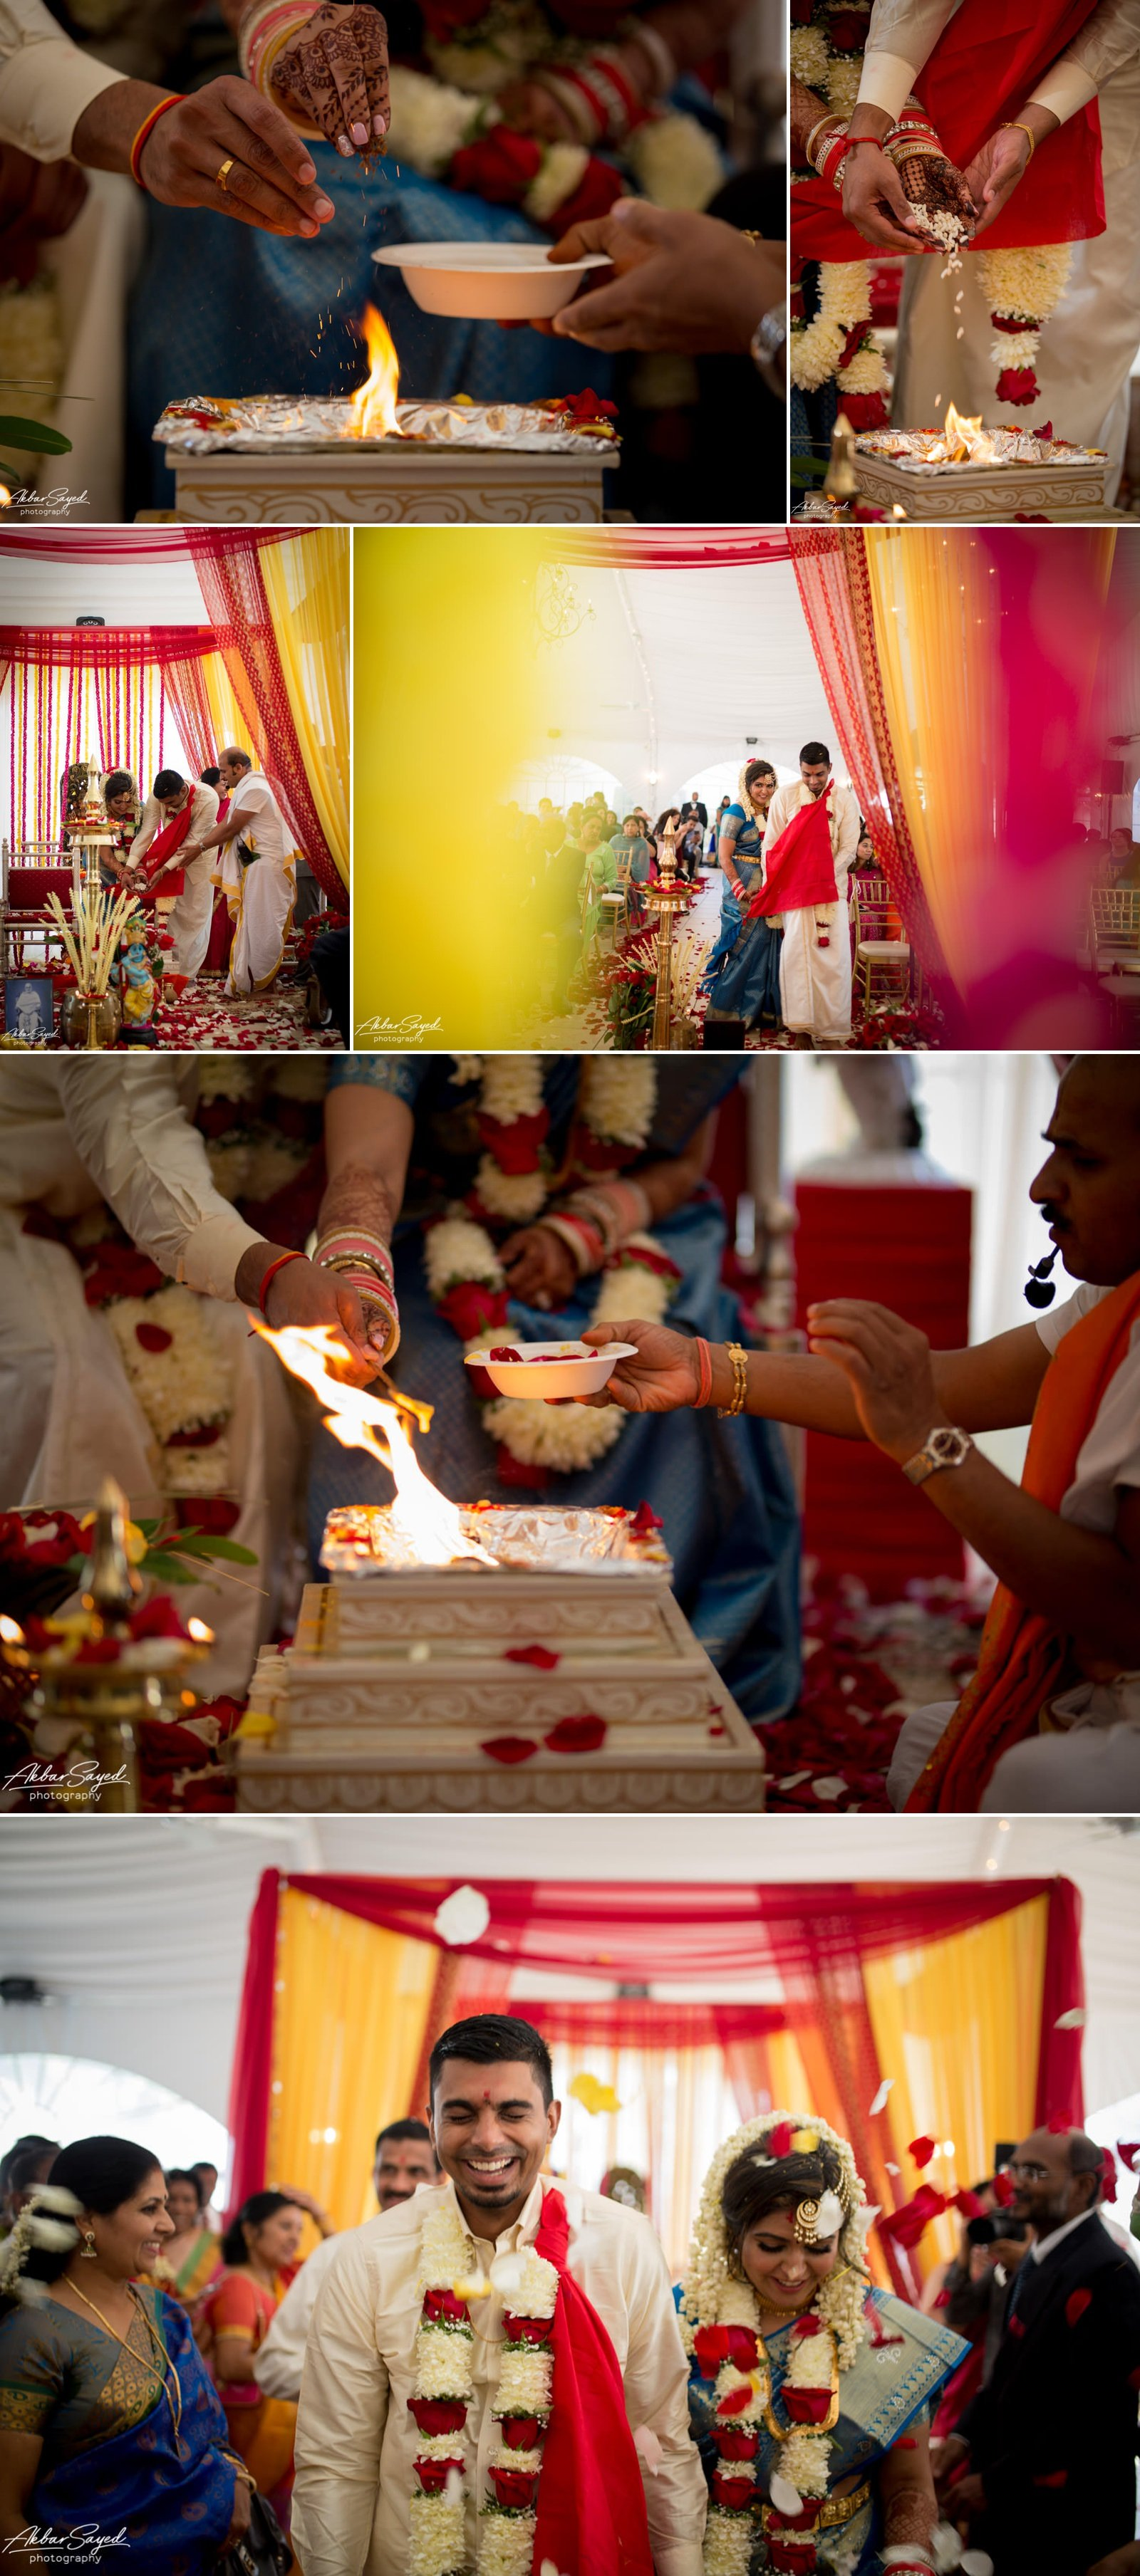 A photo collage of a couple during their Hindu wedding at The Villa in Silver Spring.